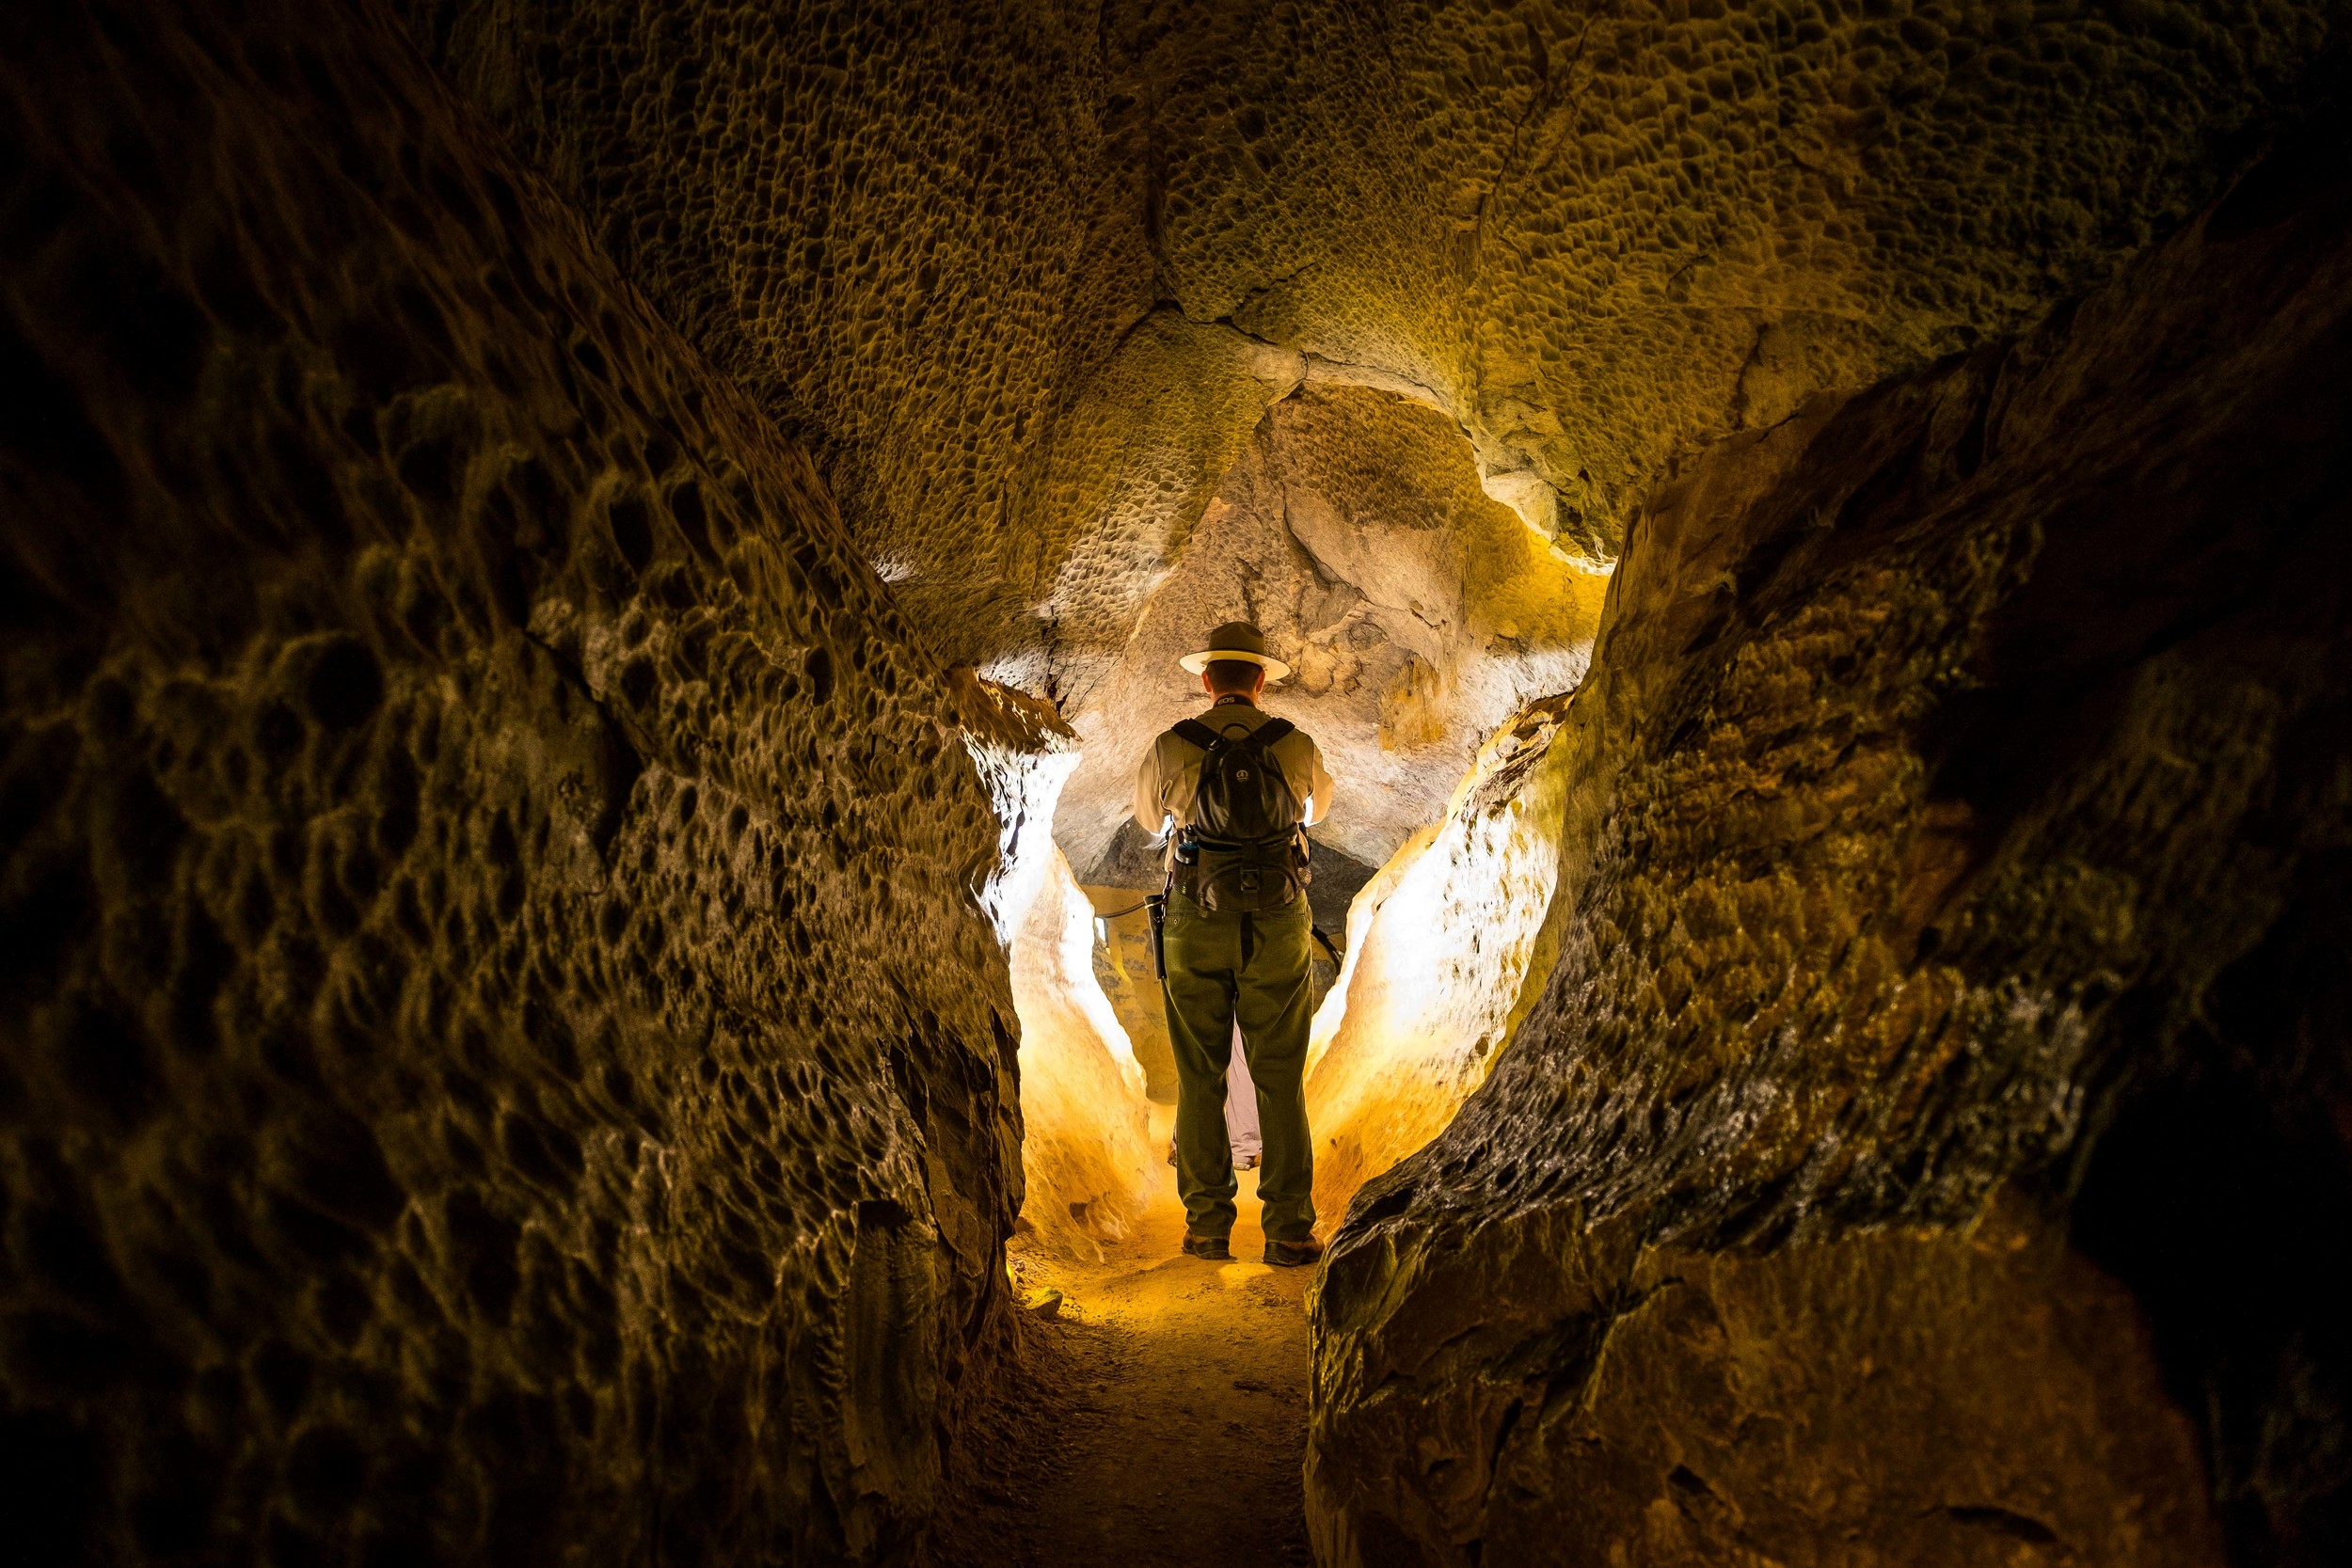 Ranger Jackie showing us the way through the cave system.